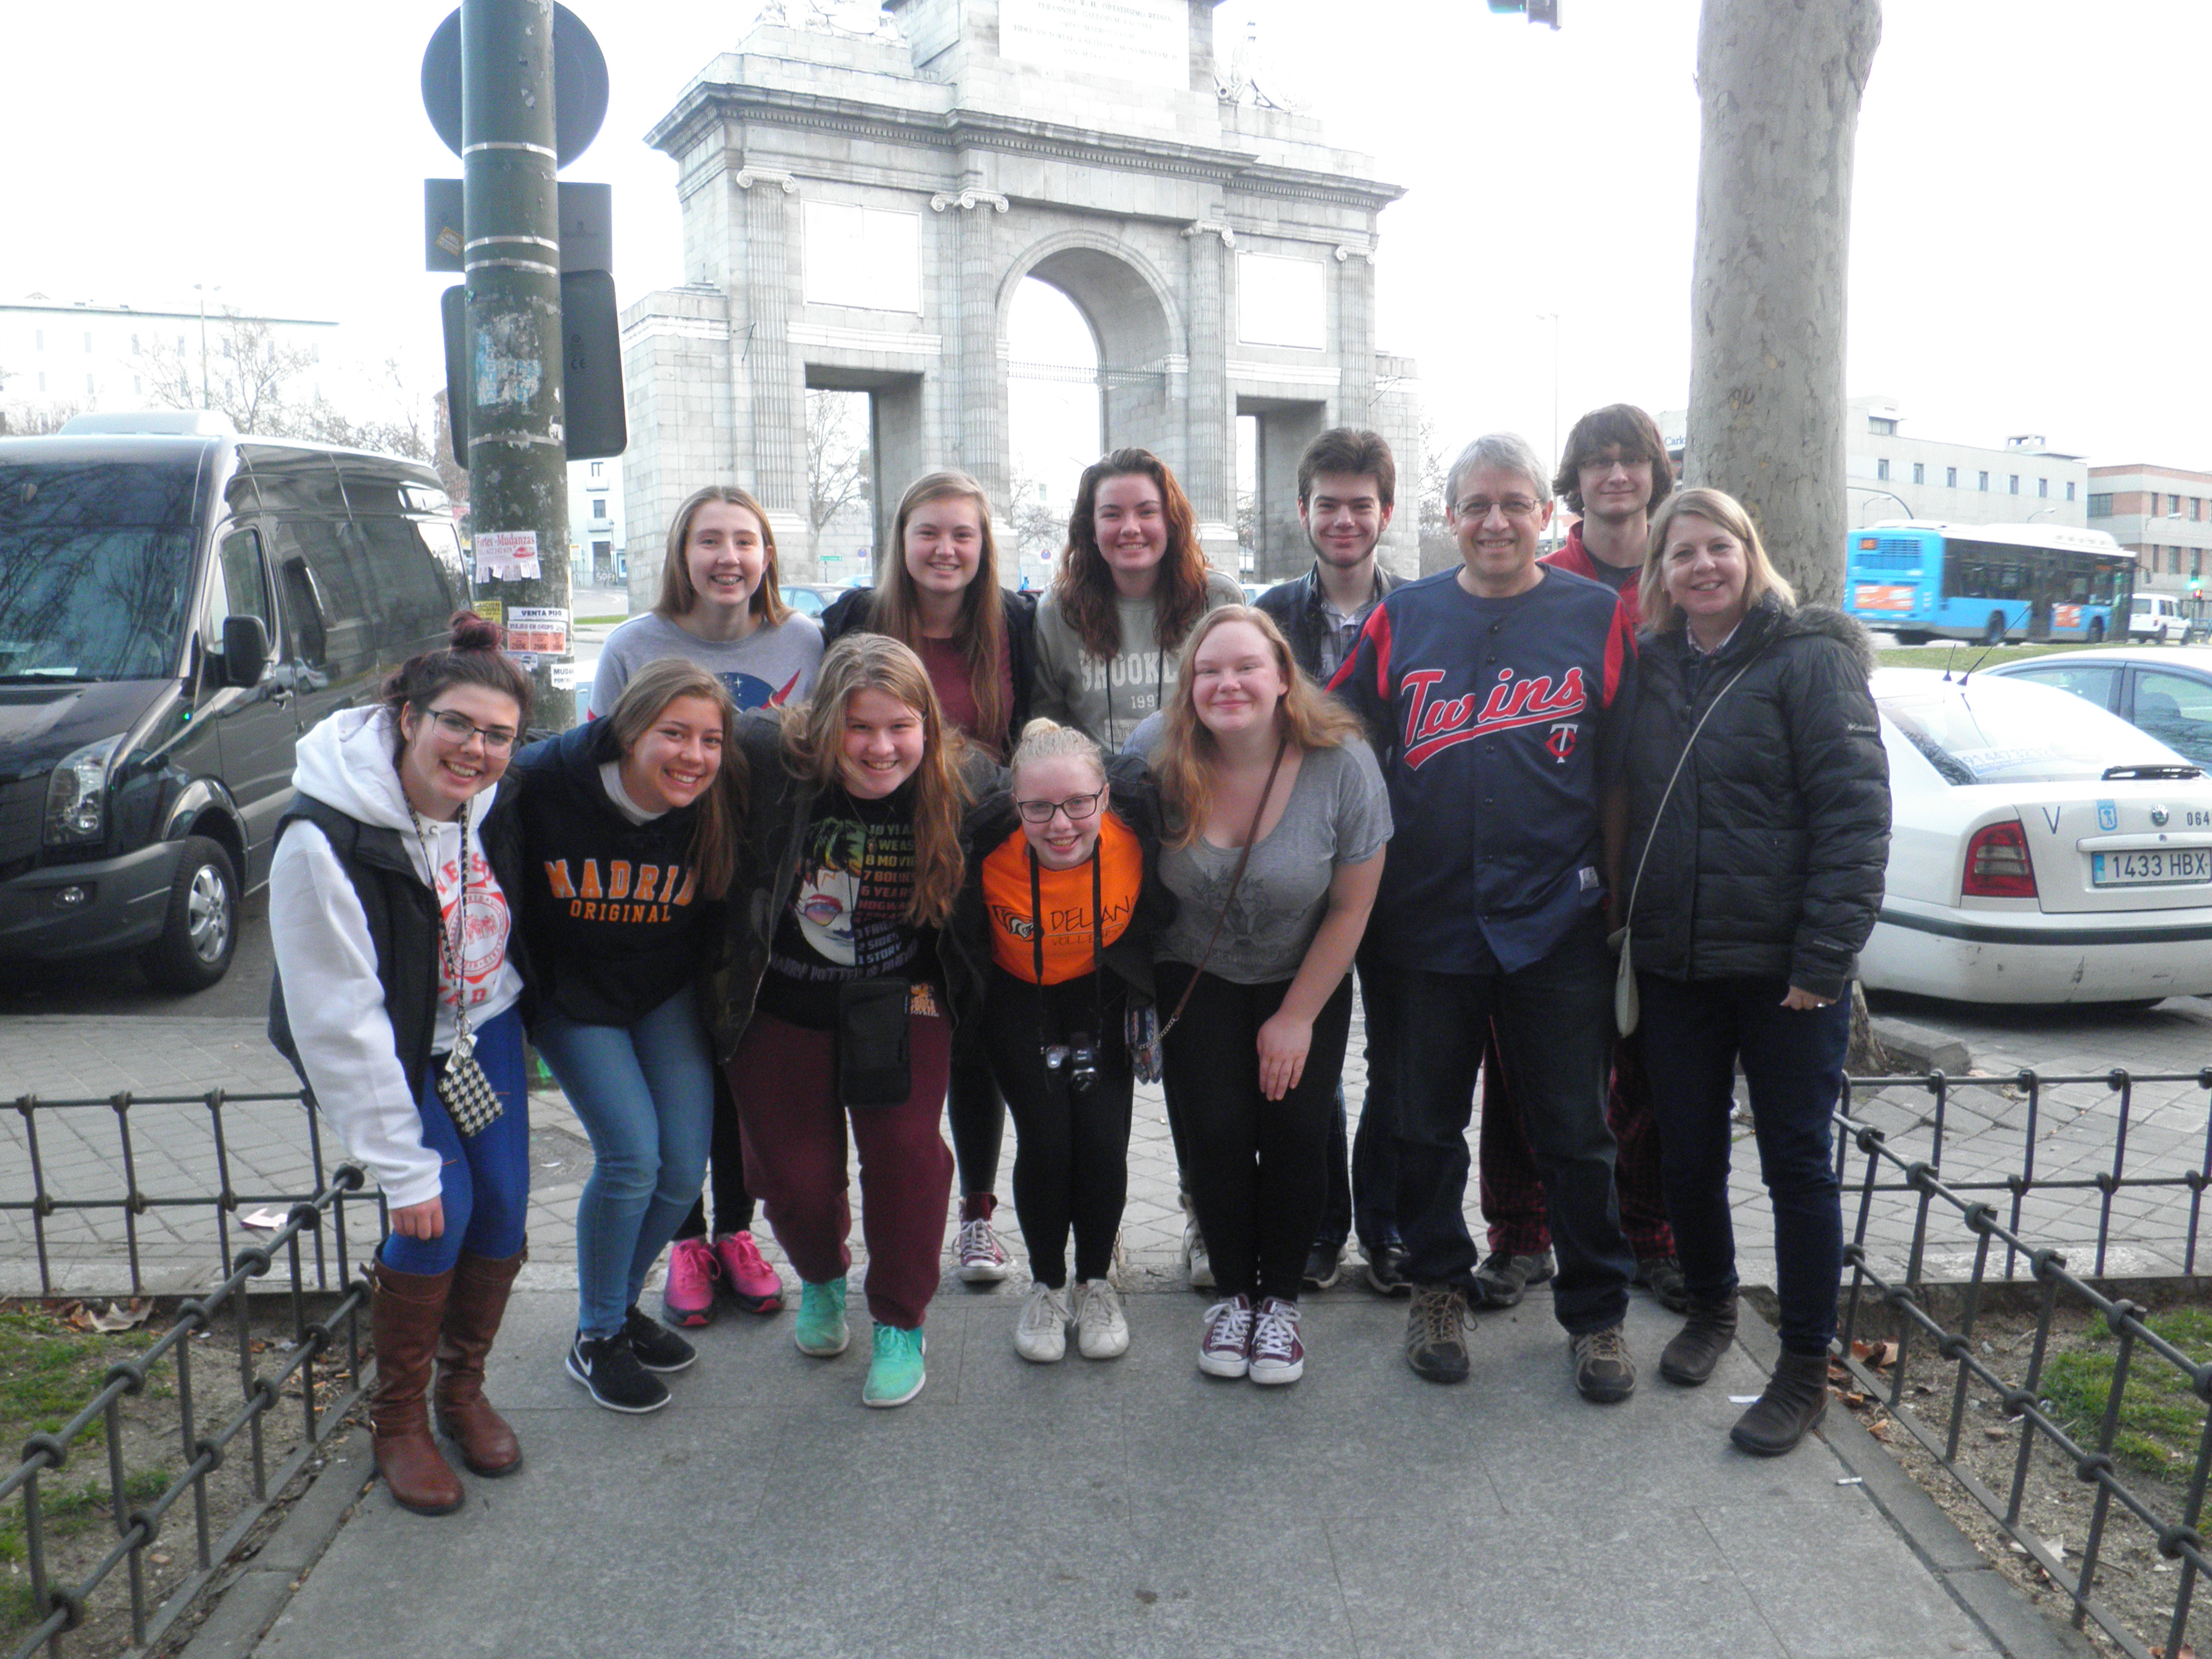 Ten Delano High School students and two chaperones visited Spain in February. They were (front) Meagan Maschino, Ginger Valentine, Courtney Rajewsky, Julia Egly, Allison Schaust, John and Dawn Fitzer, (back) Marleena Dieterich, Natalie Pupp, Brandi Sleypen, Mason Rodine, and Jack Ludwig.